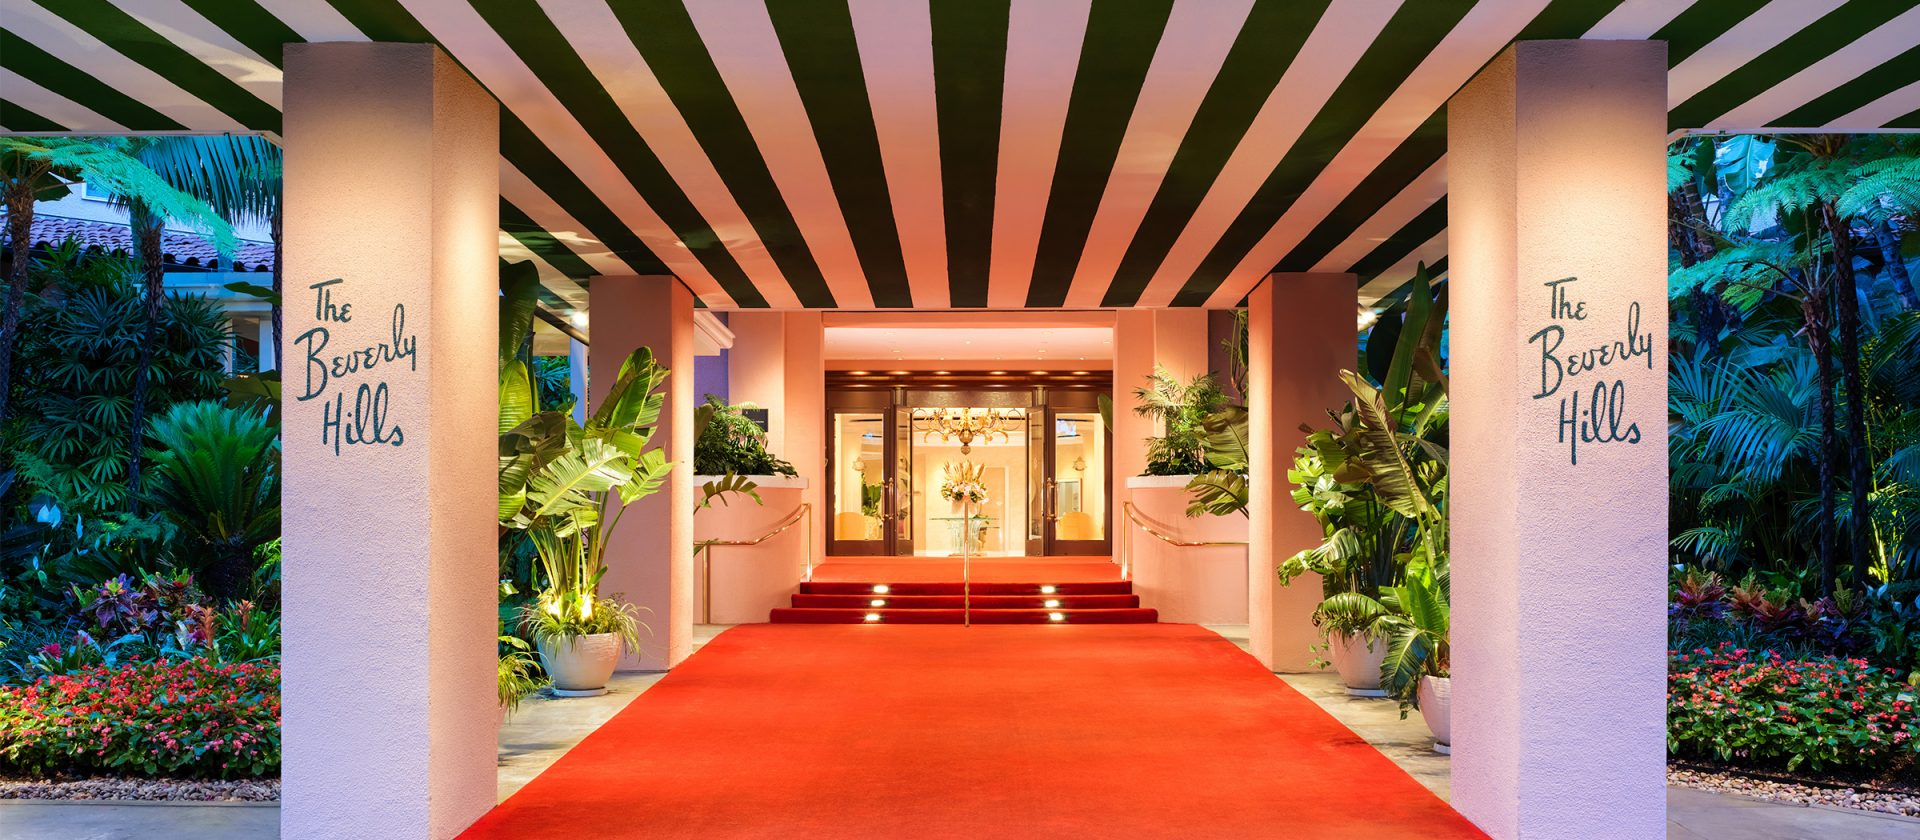 beverly-hills-entrance-red-carpet-landscape-1920x840.jpg